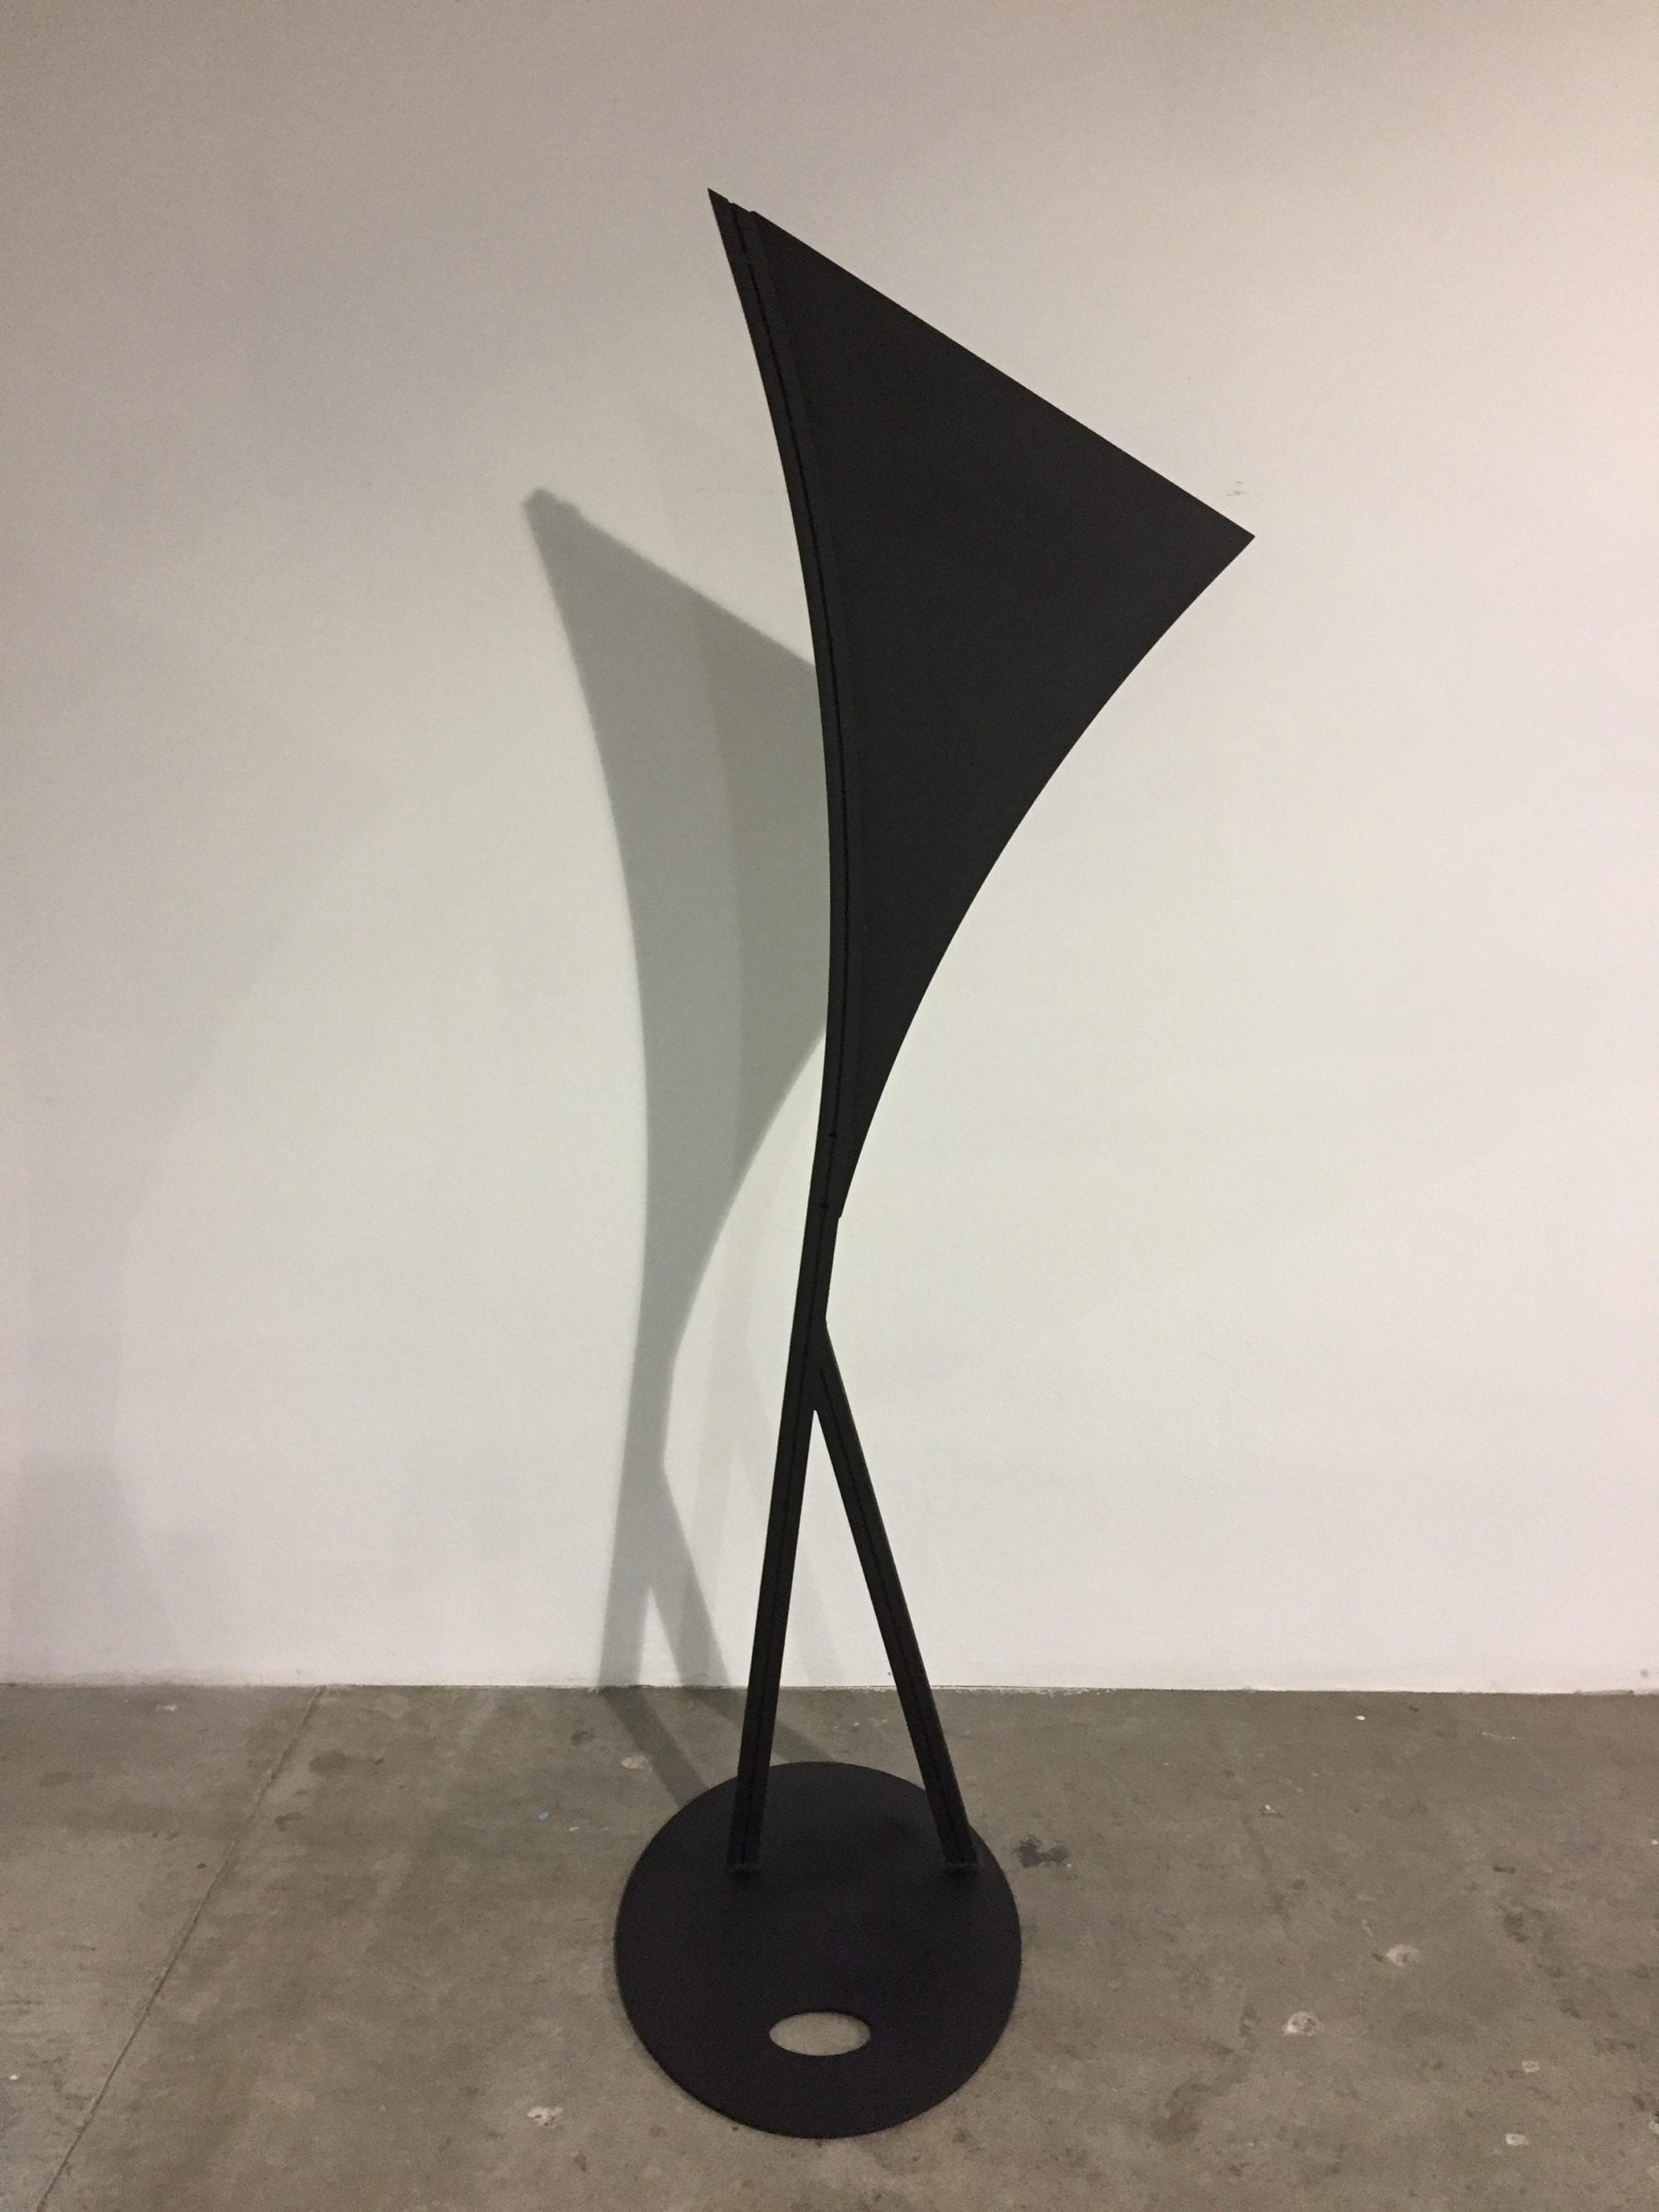 Clifford Singer, Black Sail, 2018, enamel on aluminum, 82 x 31 x 30 inches